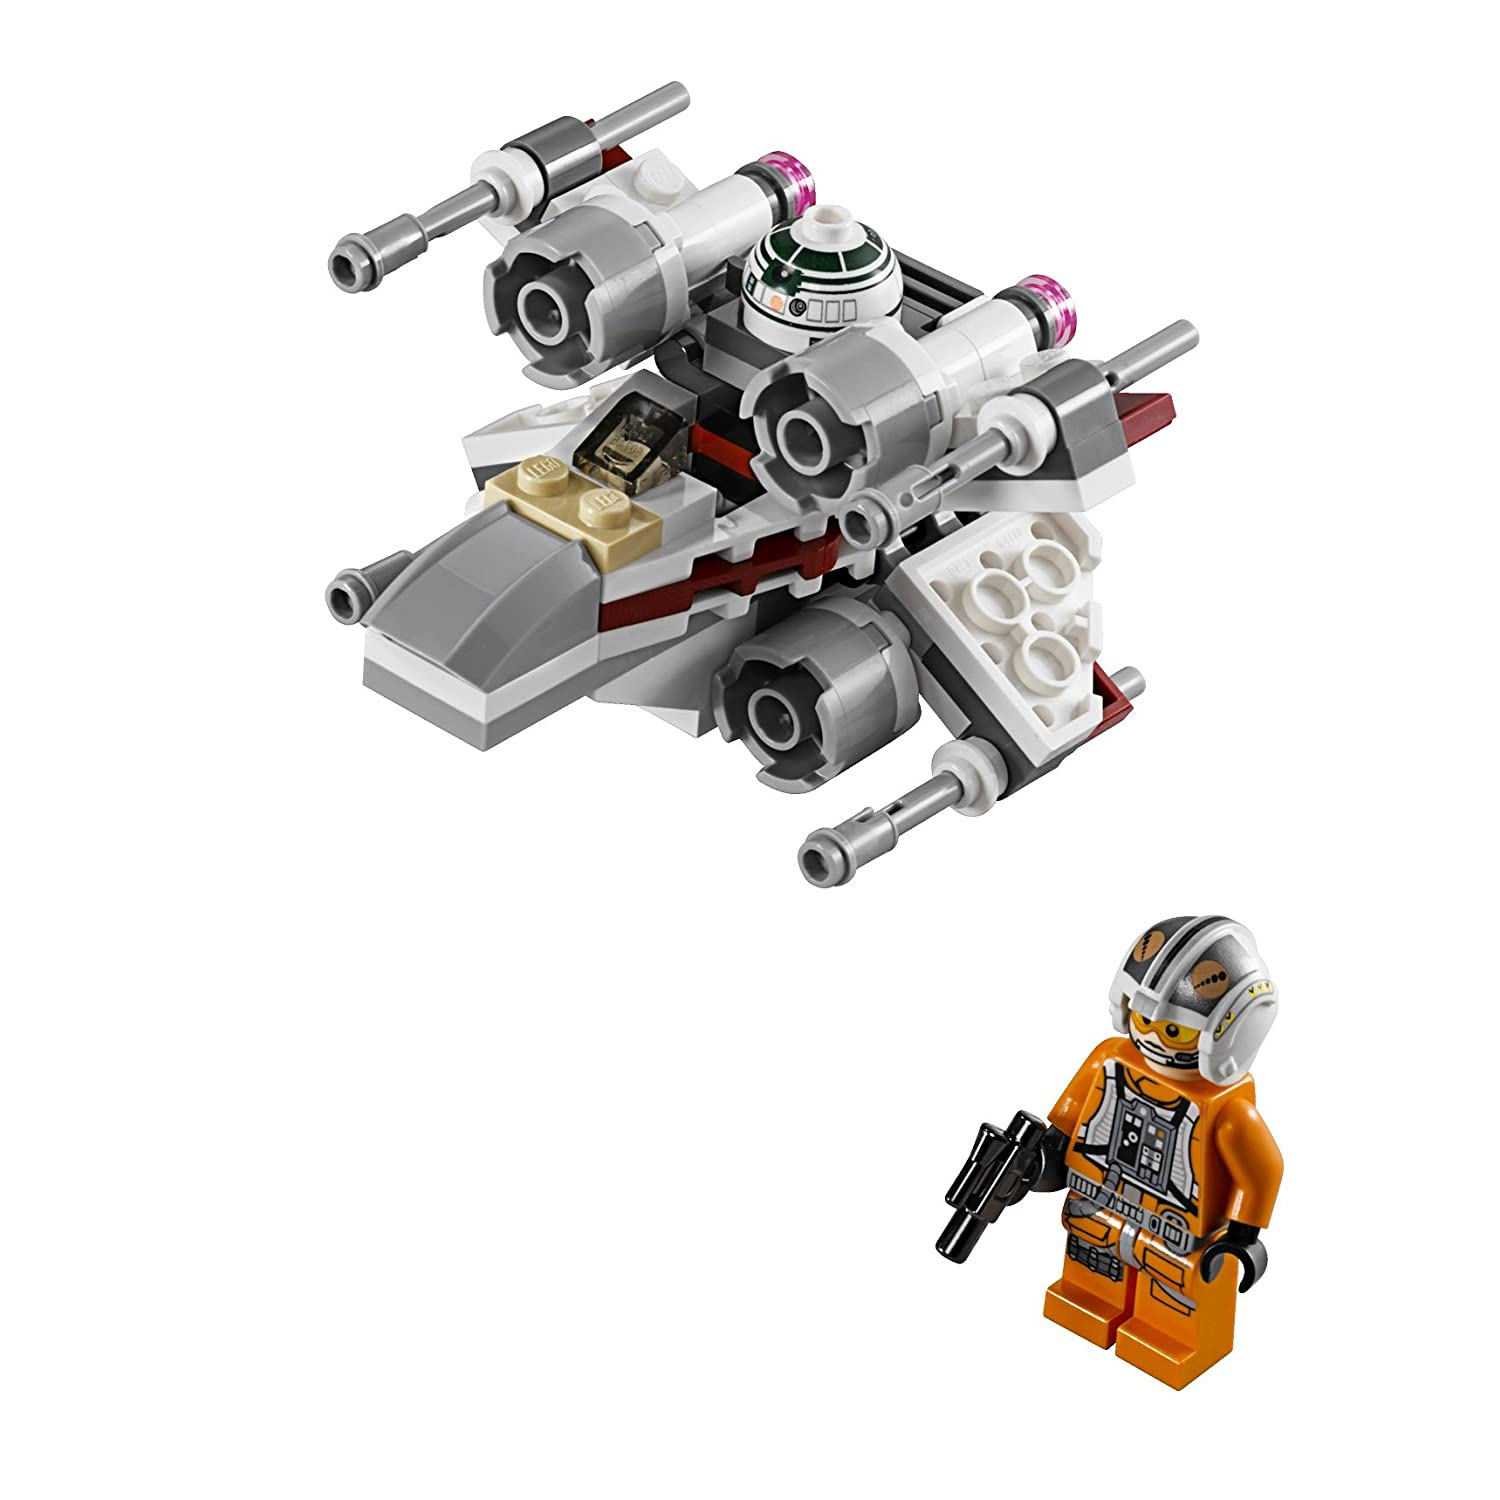 Lego Star Wars X Wing Starfighter: New LEGO Star Wars Micro Fighter X-wing Fighter 75032 From